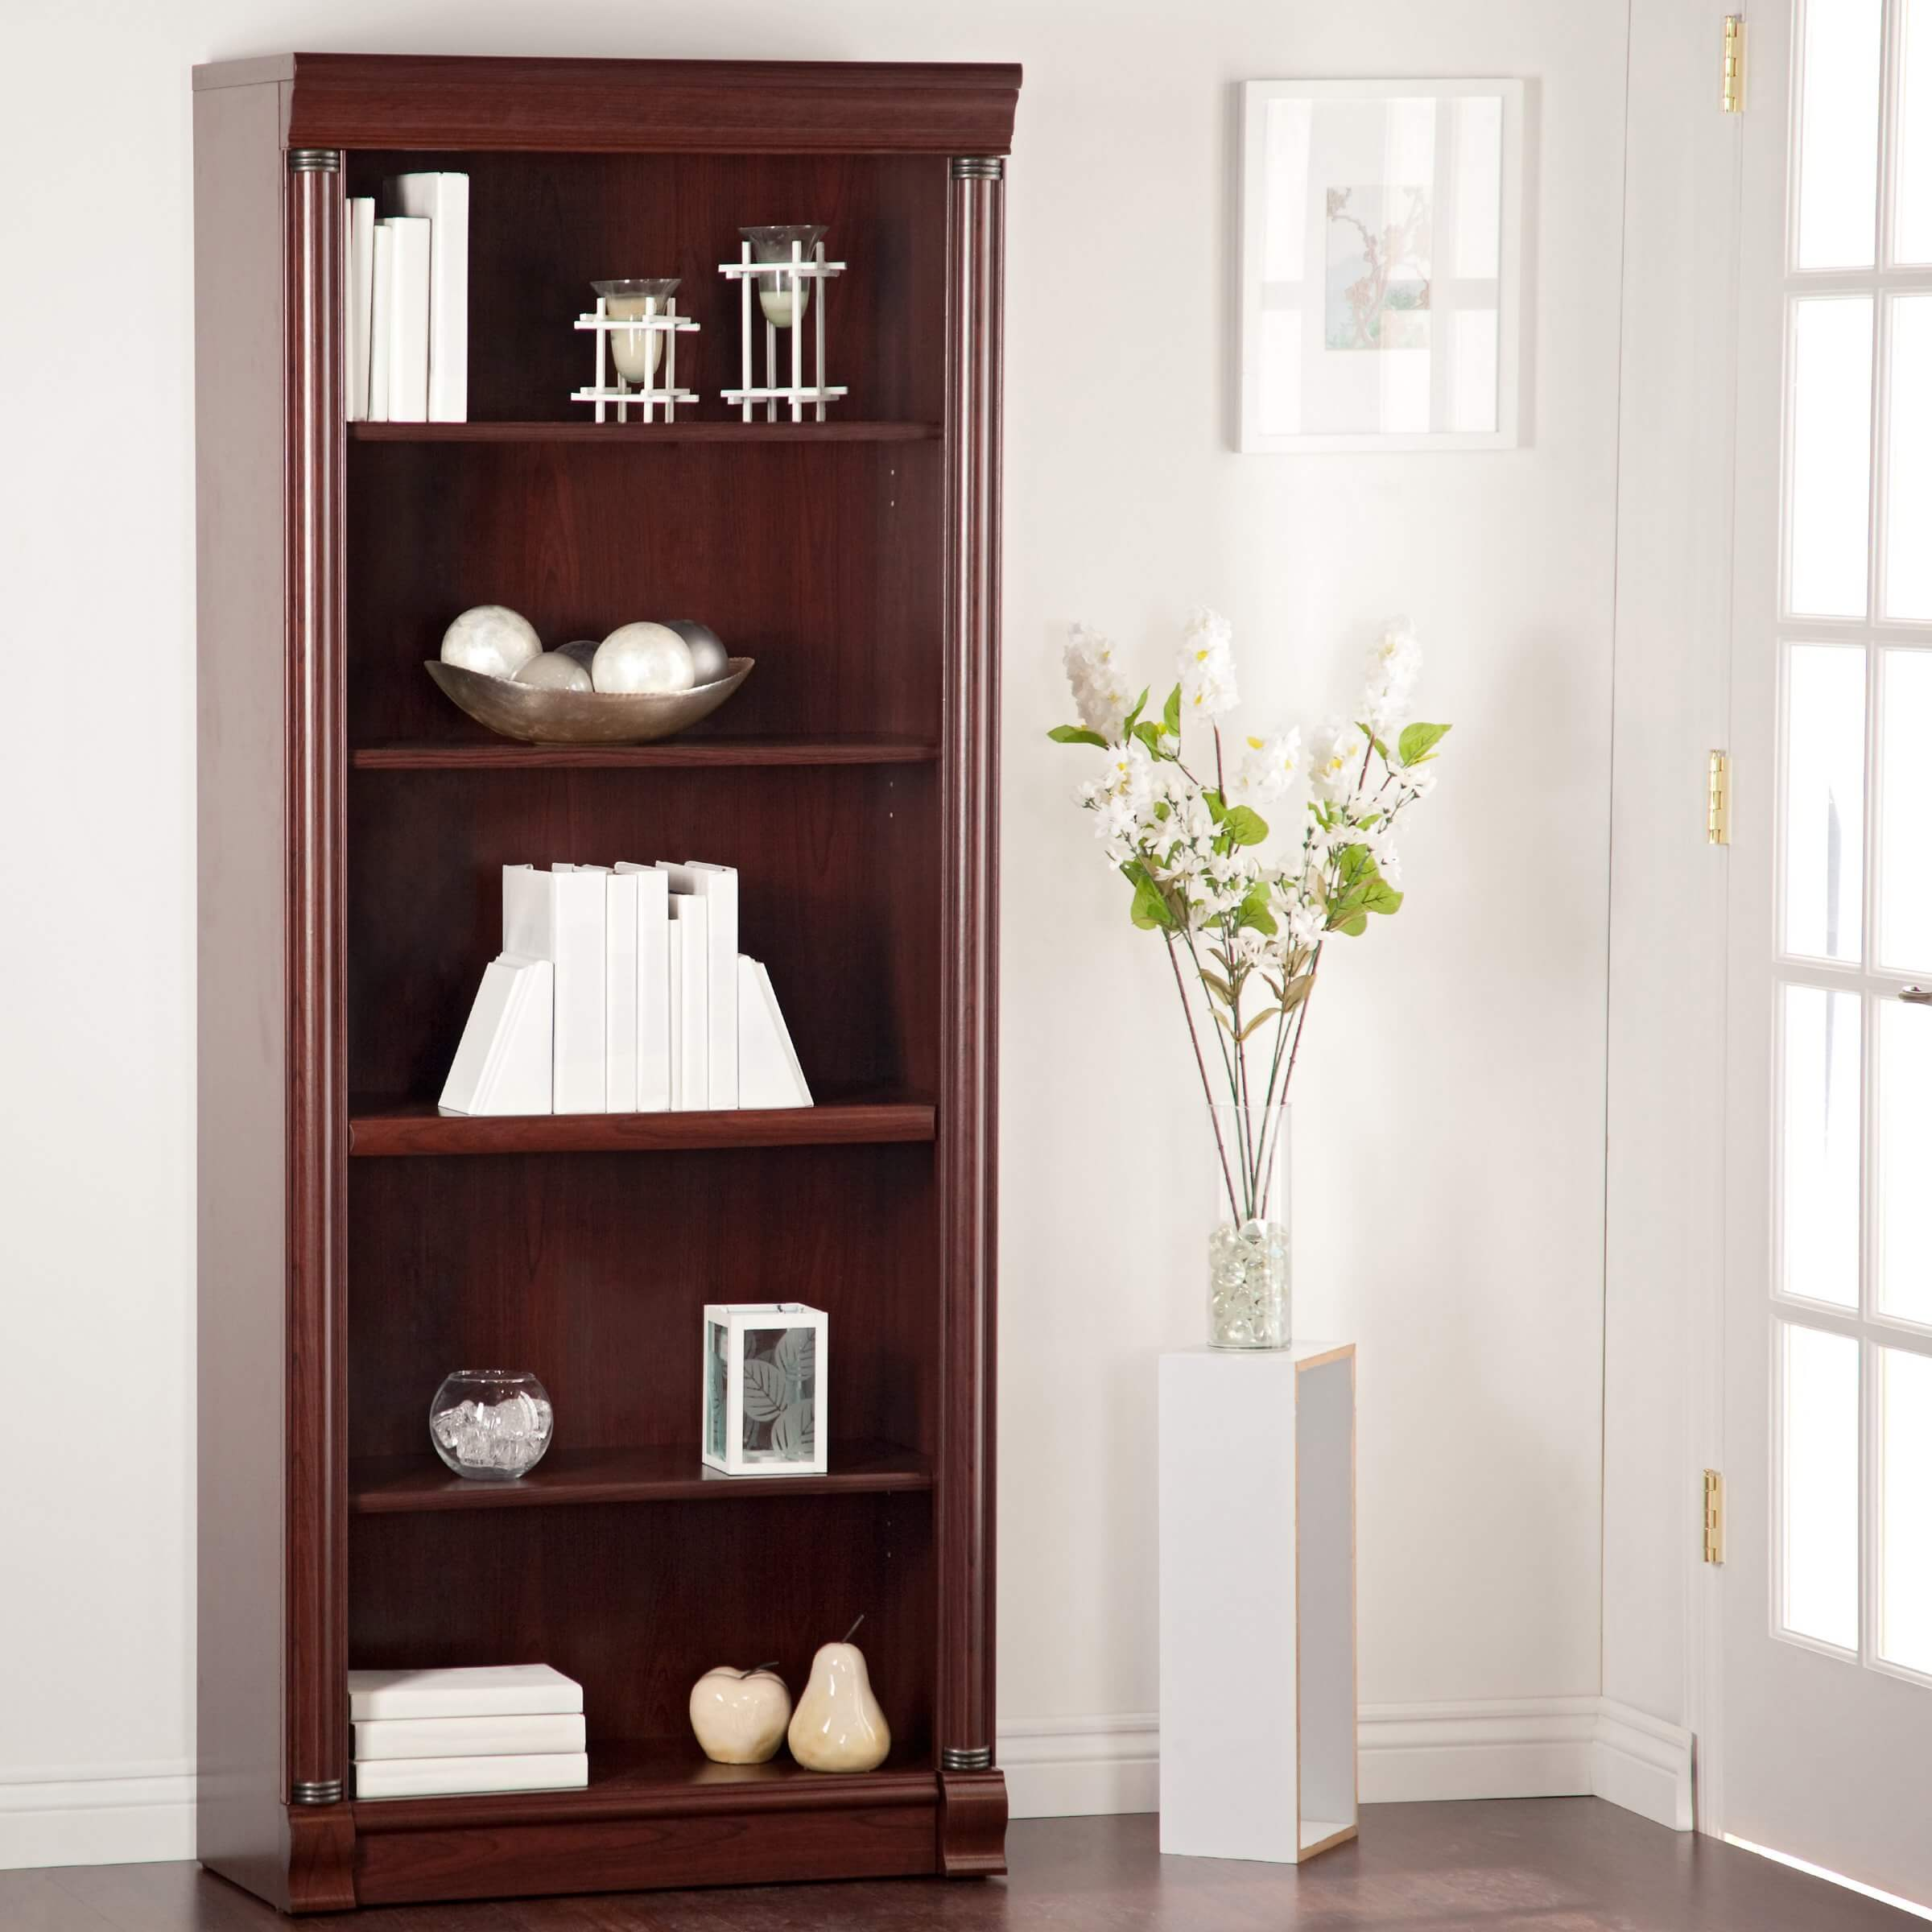 Standard design bookcases will be a large, single piece of furniture with an array of horizontal shelving, support walls, and a backing wall. They are often rectangular and tall, although not in all cases. The most common construction material is wood, but you may find them in every material available.